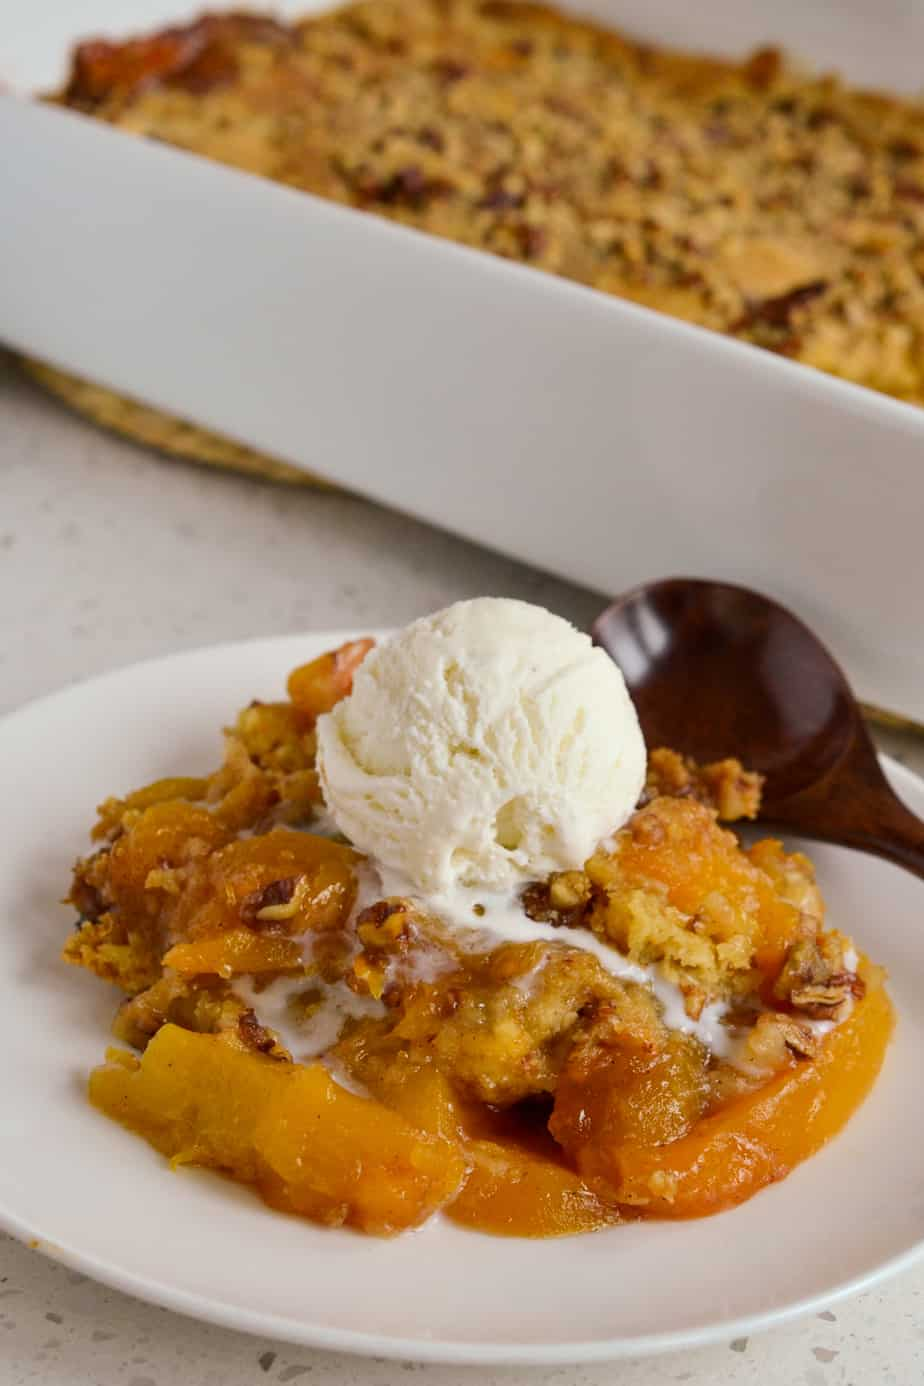 This Peach Dump Cake is made with fresh or frozen peaches giving it spectacular flavor and texture.